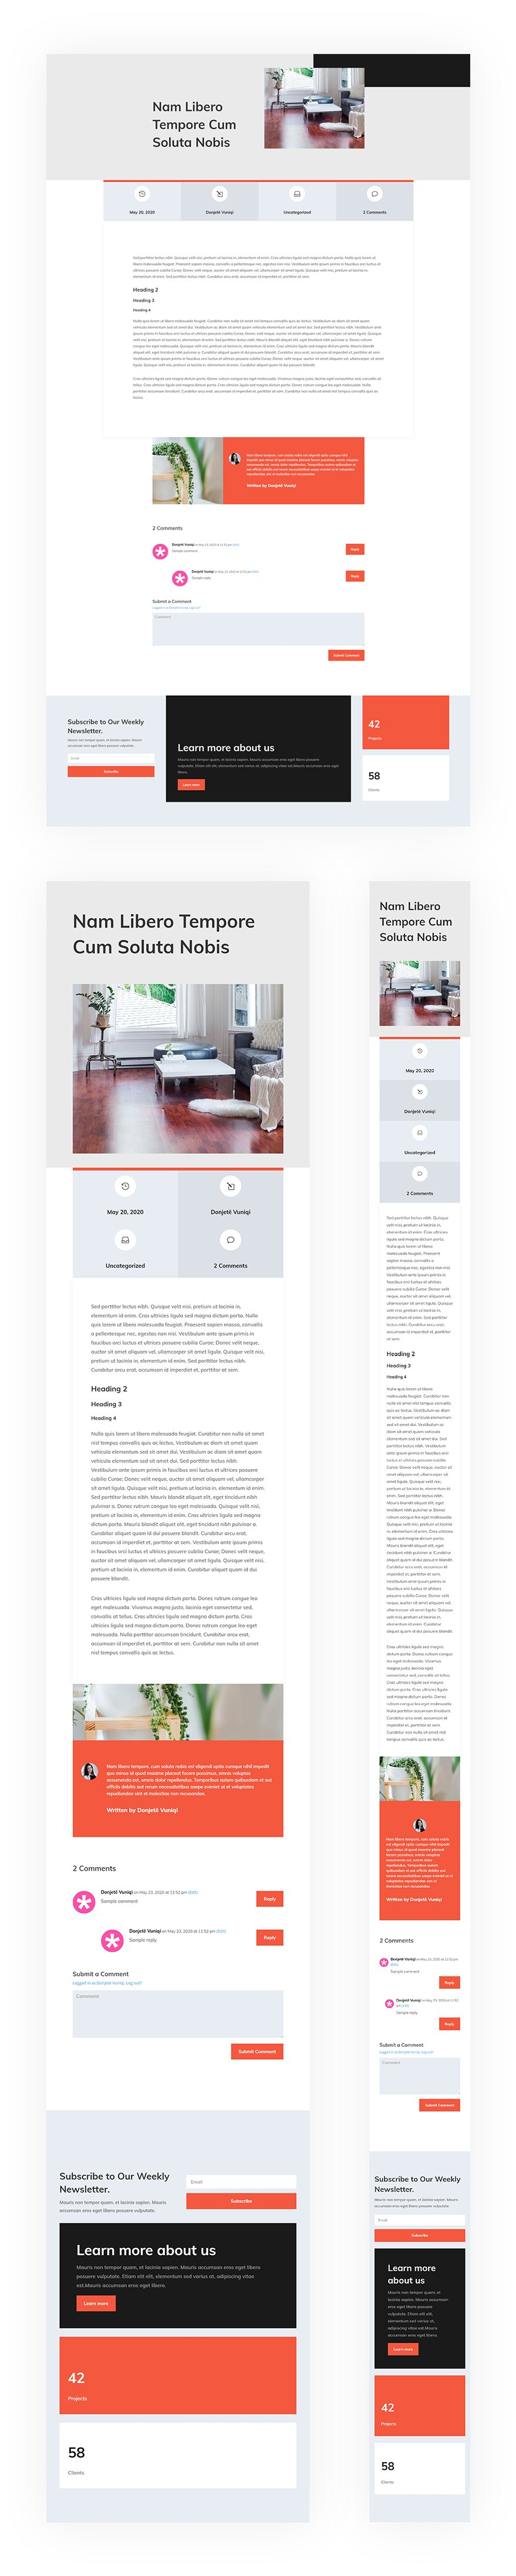 download-a-free-blog-post-template-for-divis-interior-design-layout-pack Download a FREE Blog Post Template for Divi's Interior Design Layout Pack